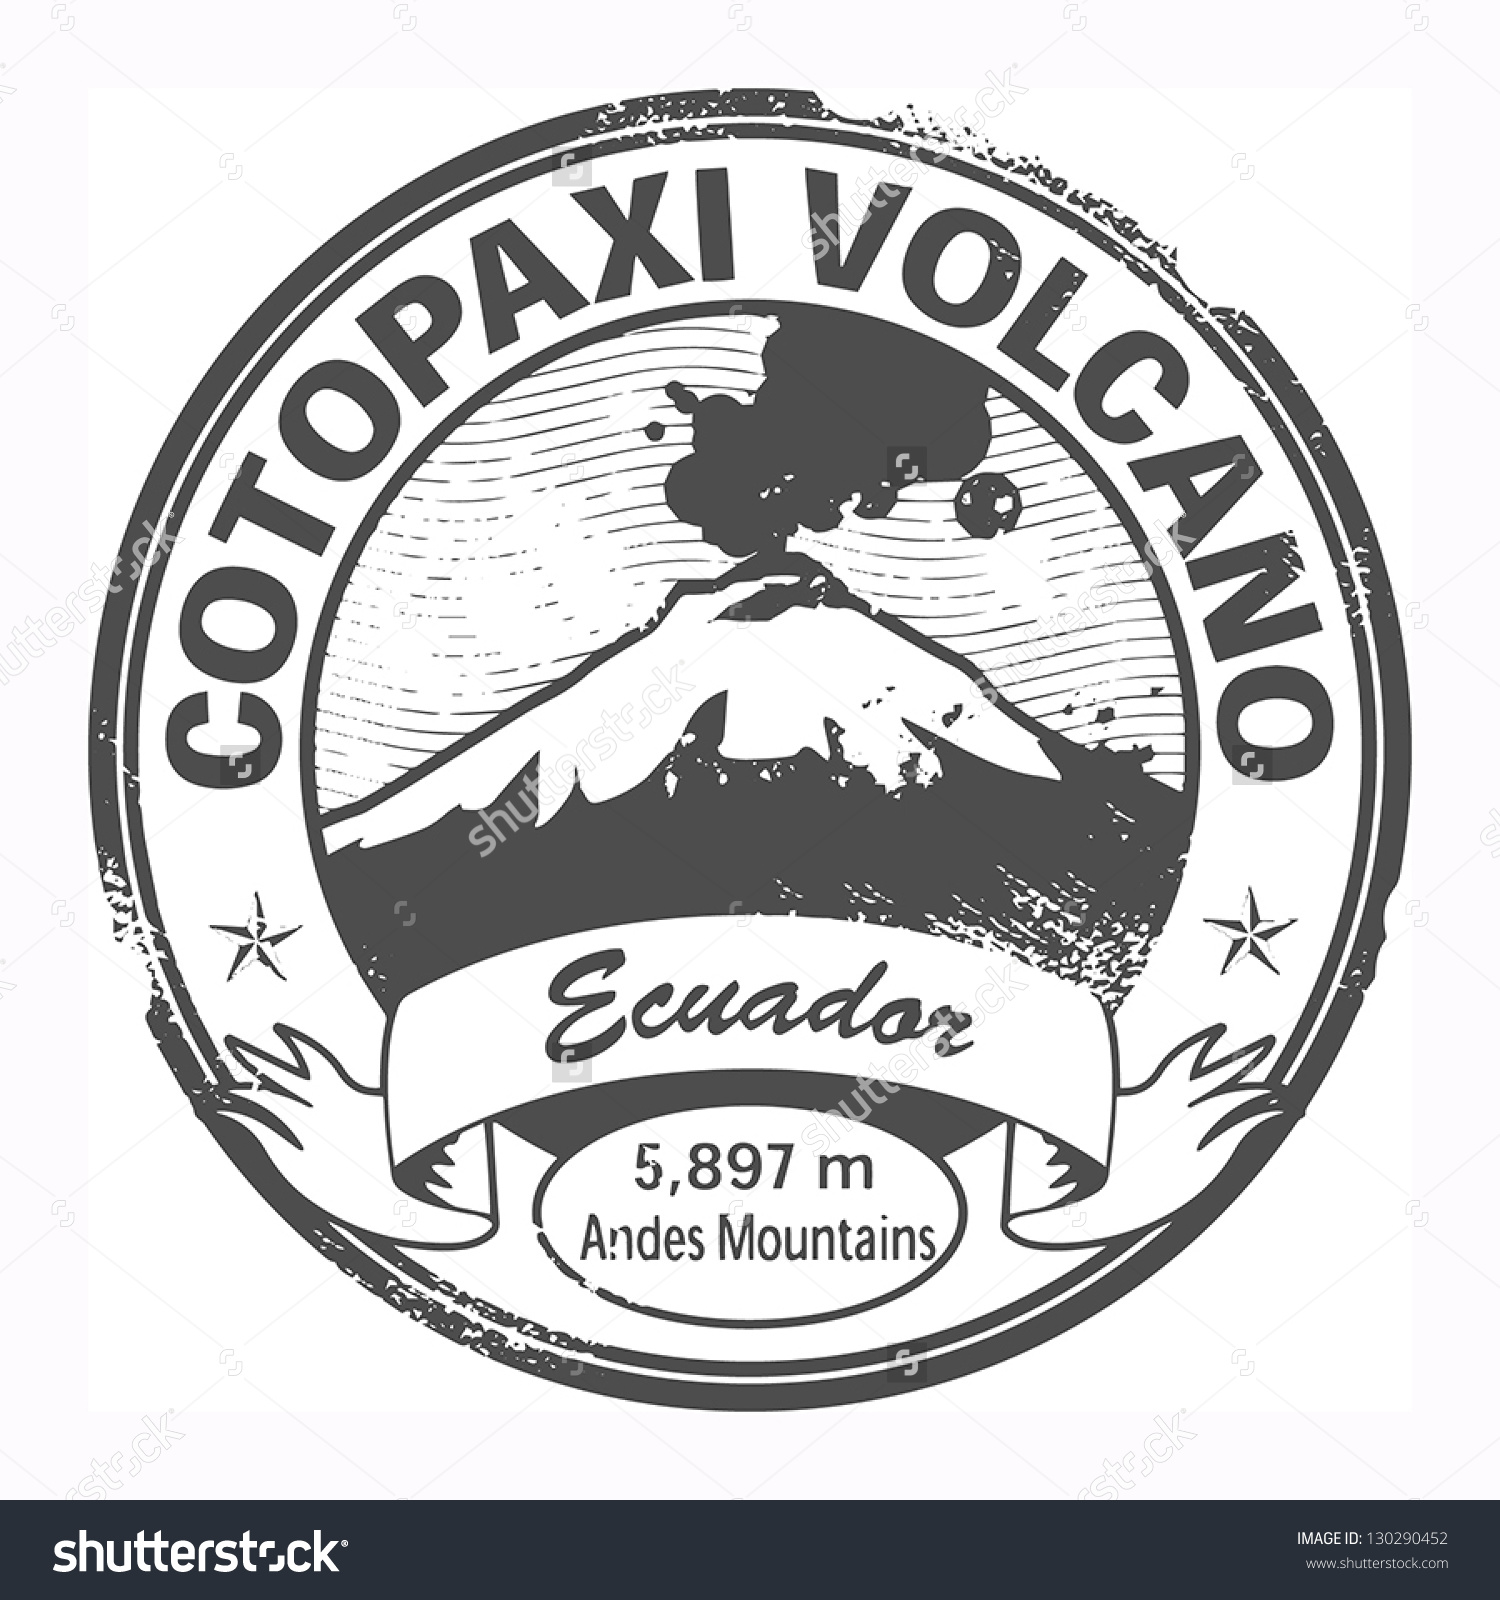 Cotopaxi clipart #2, Download drawings